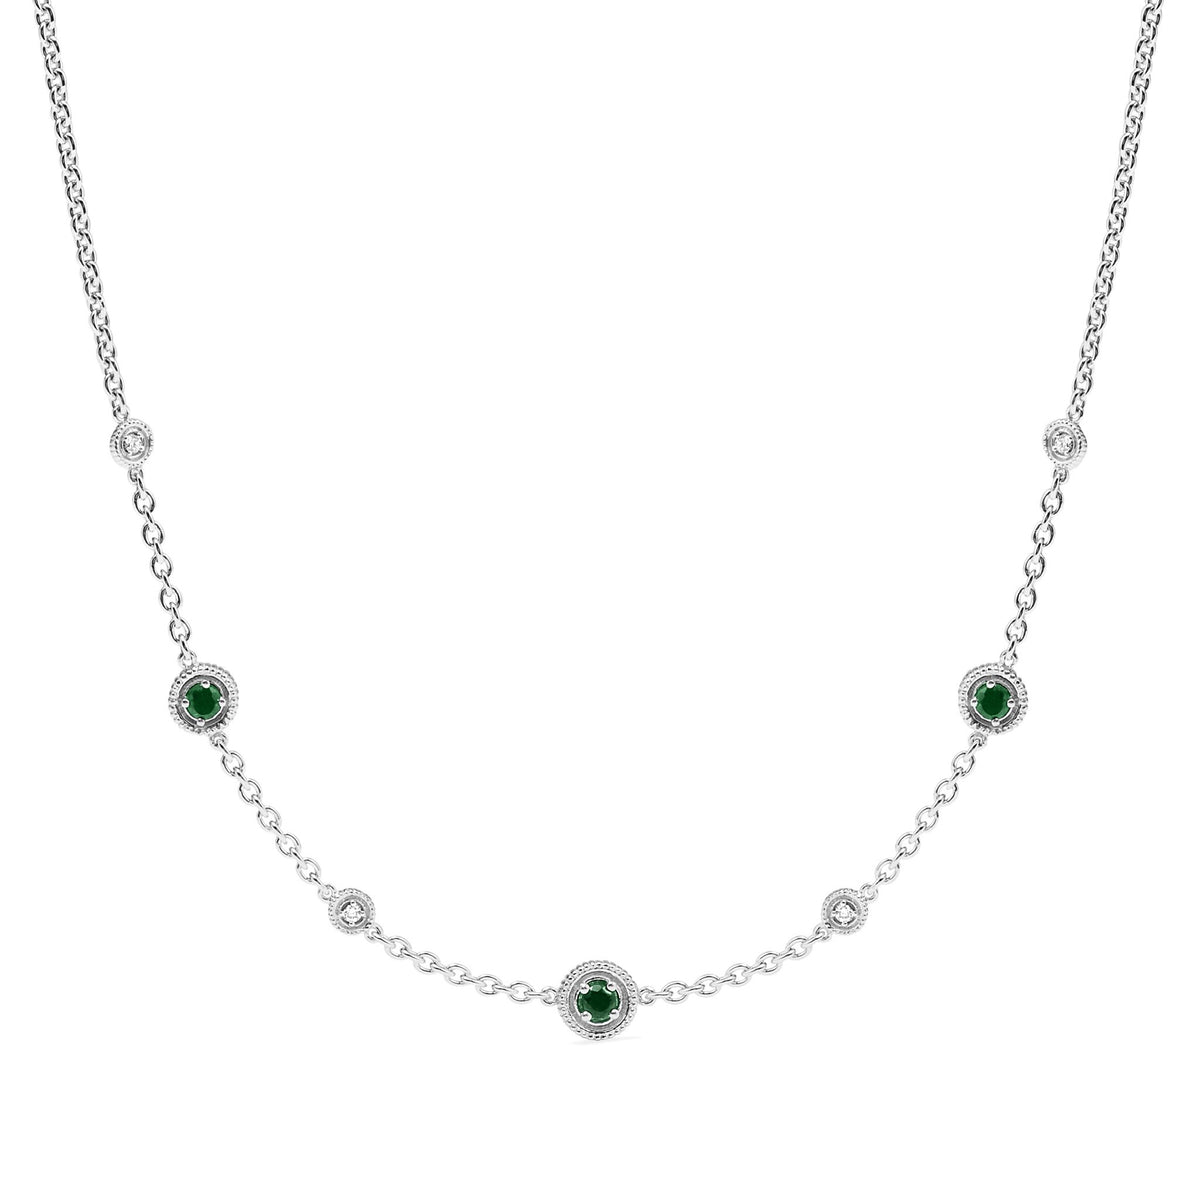 Max Station Necklace with Emerald and Diamonds